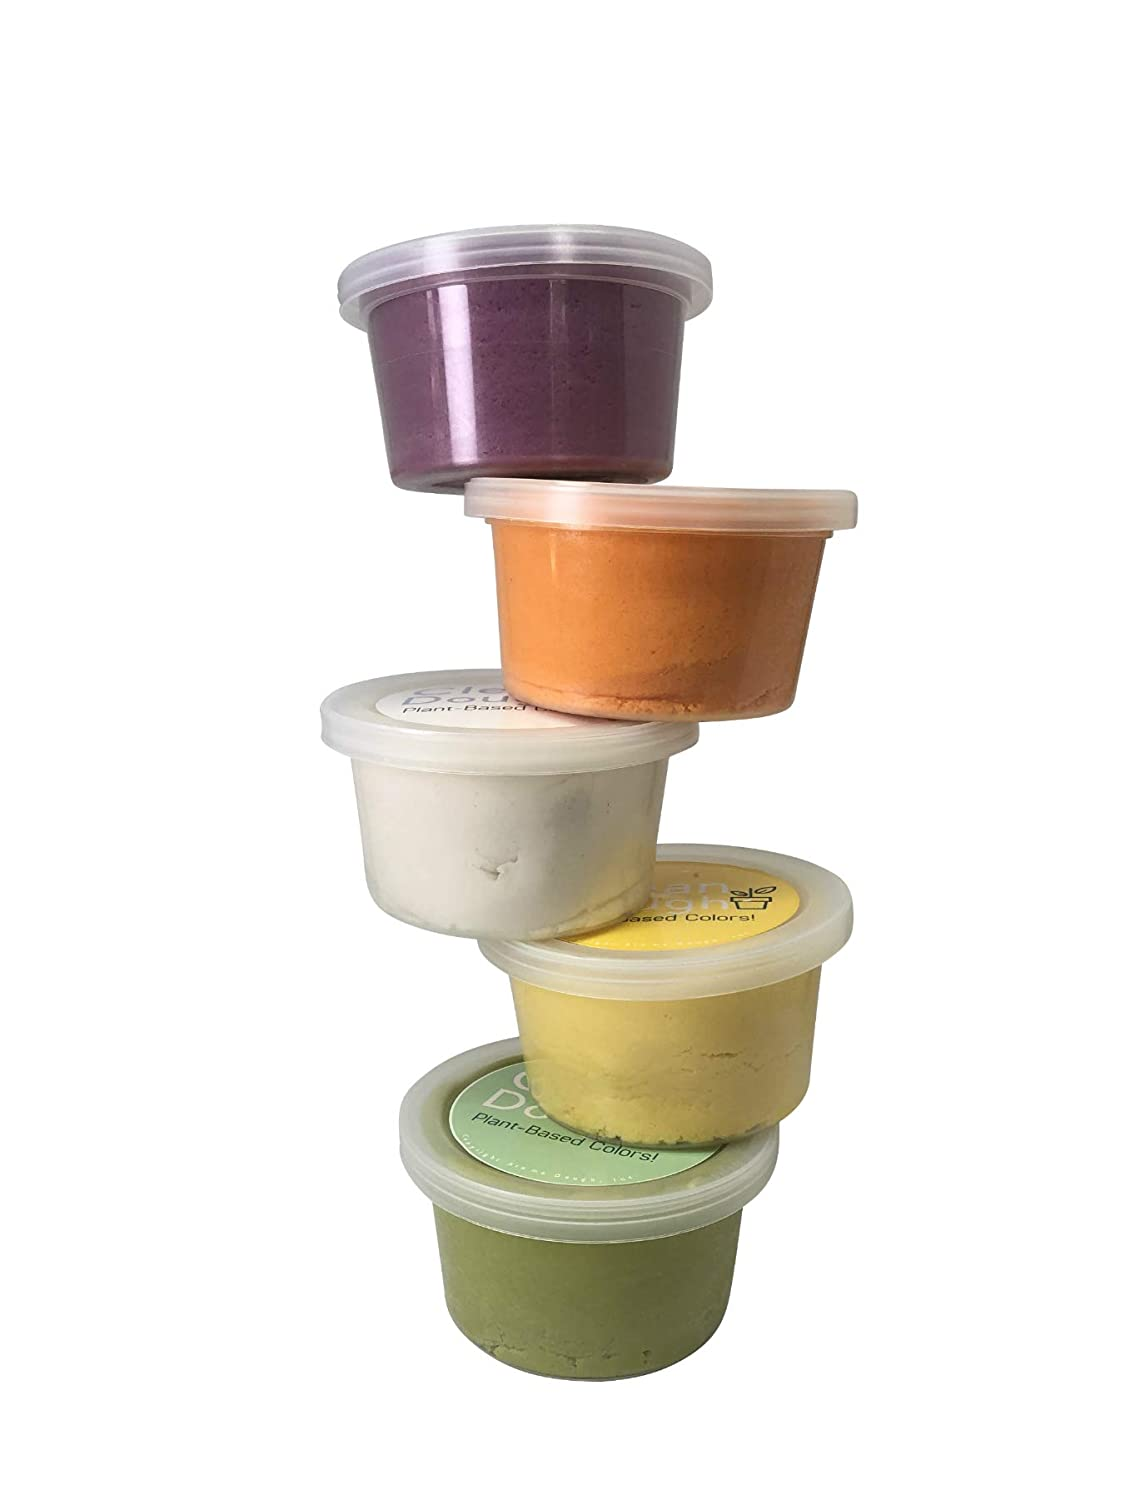 Hypoallergenic Soy-Free Aroma Dough Clean Dough- Gluten-Free Sensory Play Dough 5 Pack Back to School Supplies for Kids Fragrance Free /& Dye Free Play Dough Set